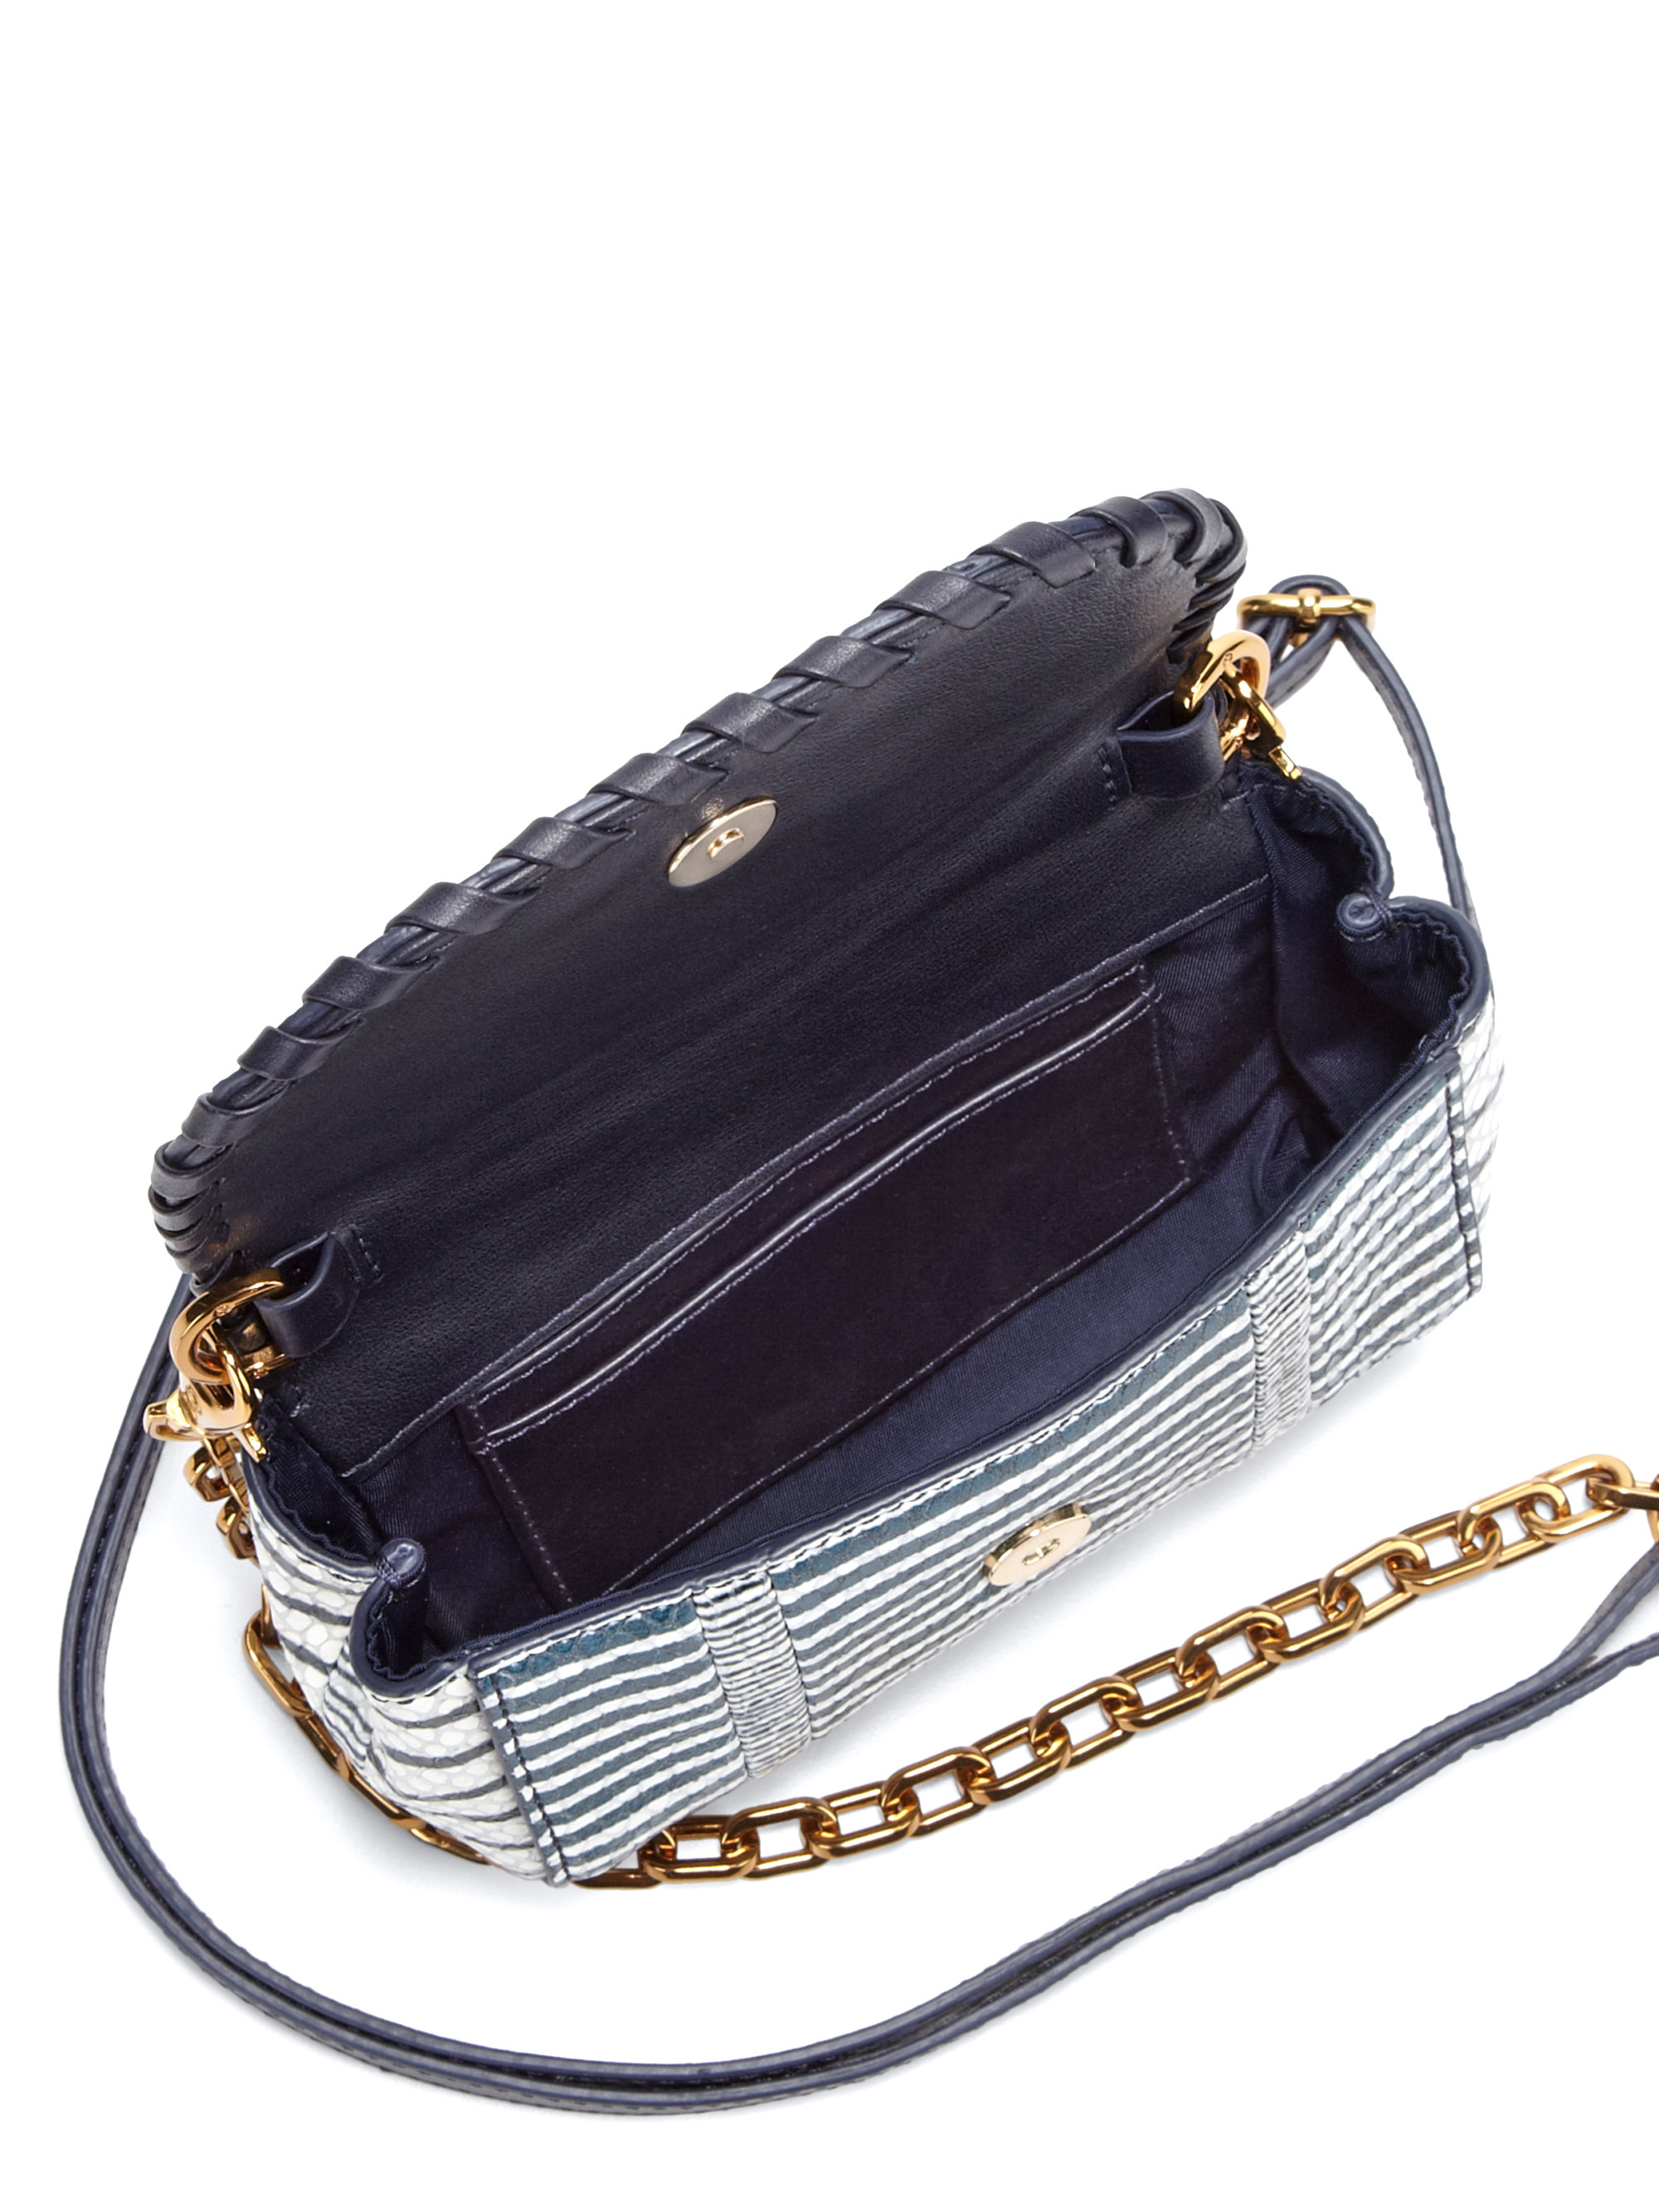 fc7f5b04c1c Gallery. Previously sold at: Saks Fifth Avenue · Women's Tory Burch Marion